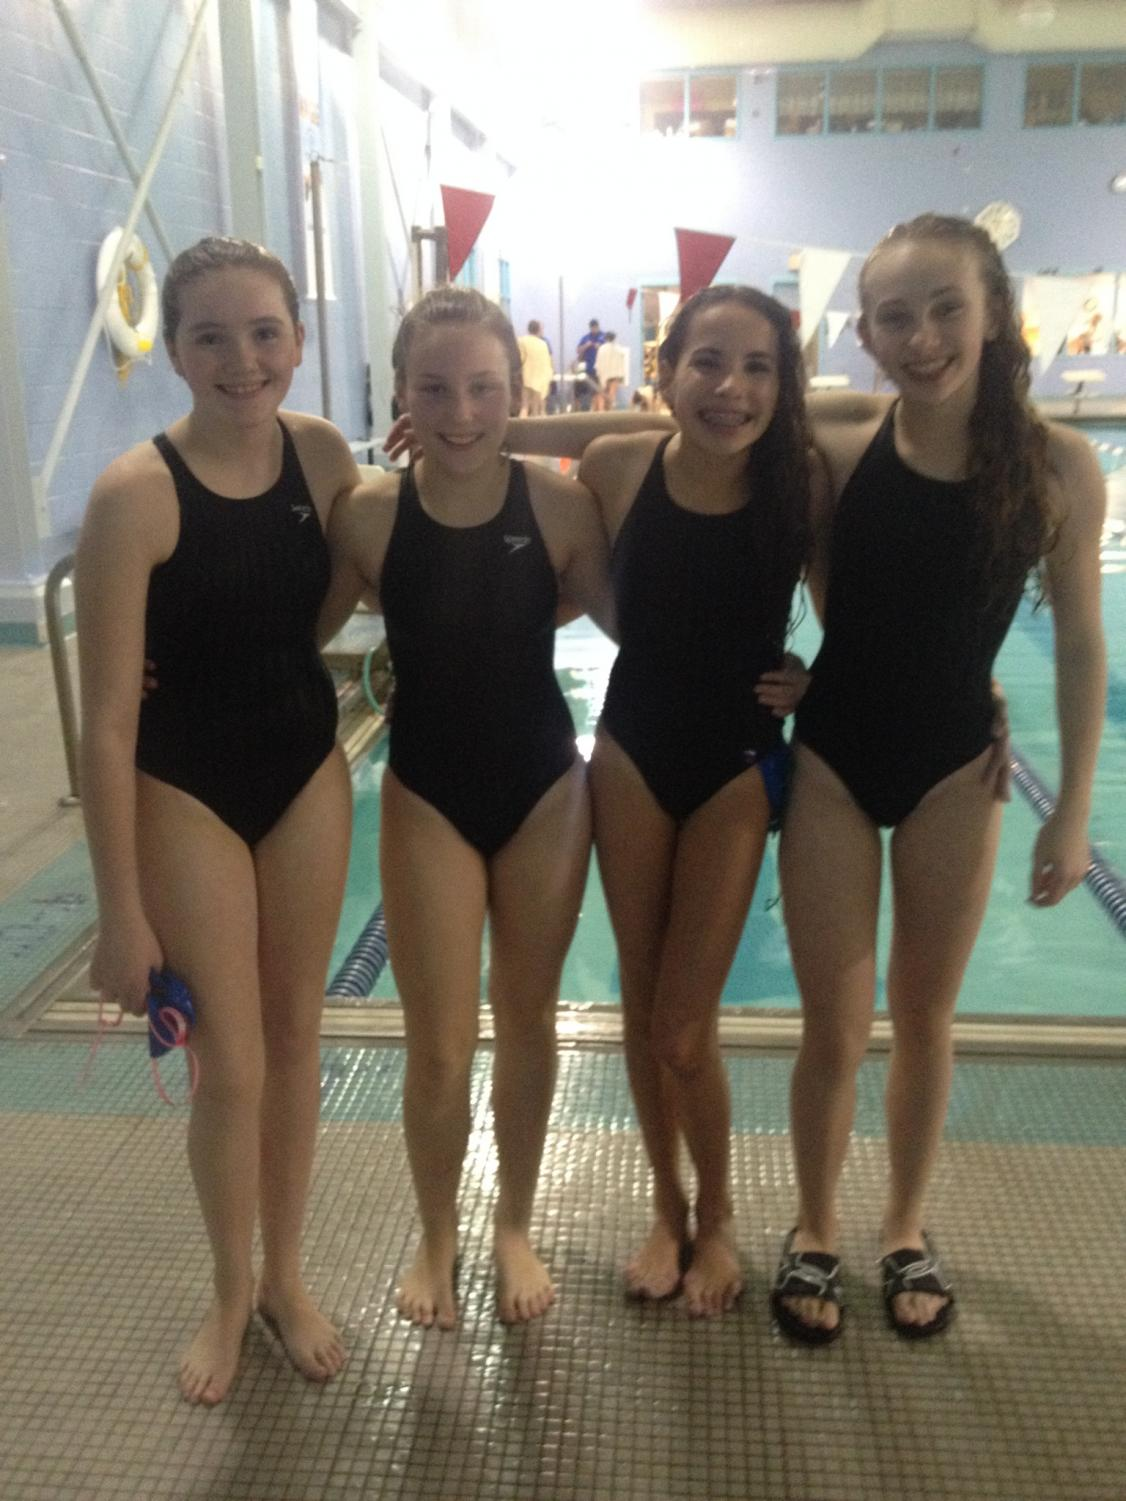 8th grade swimmers Lindsay Kenney, Chloe Bramlett, Hailey Stuck, and Meghan Pinter are freshman now and still swimming